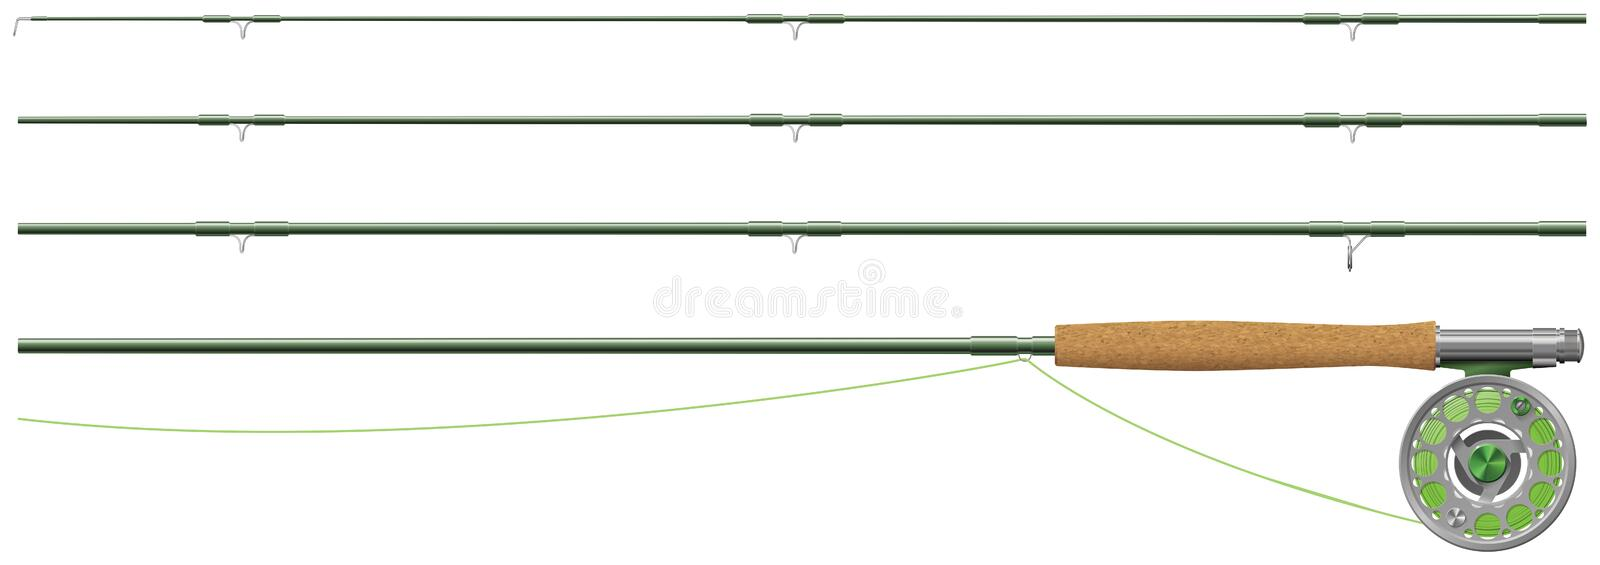 Fly fishing rod and reel. In sections. Some transparencies are used in the eps 10 file royalty free illustration